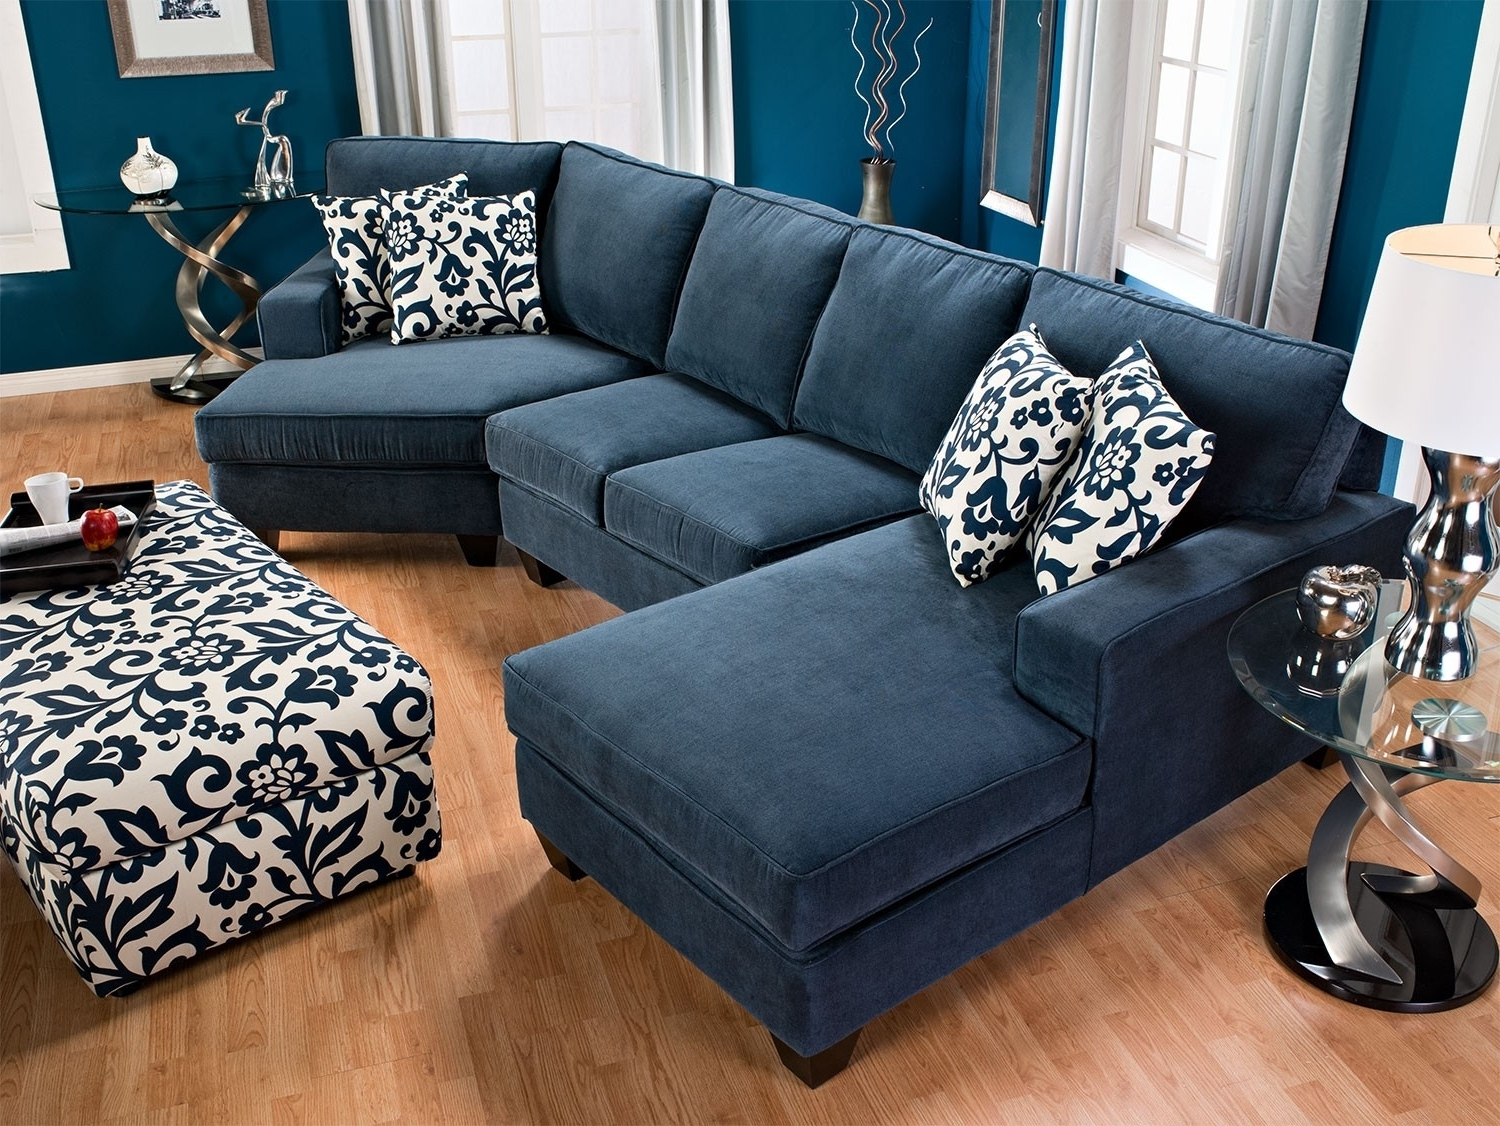 explore gallery of sectional sofas with